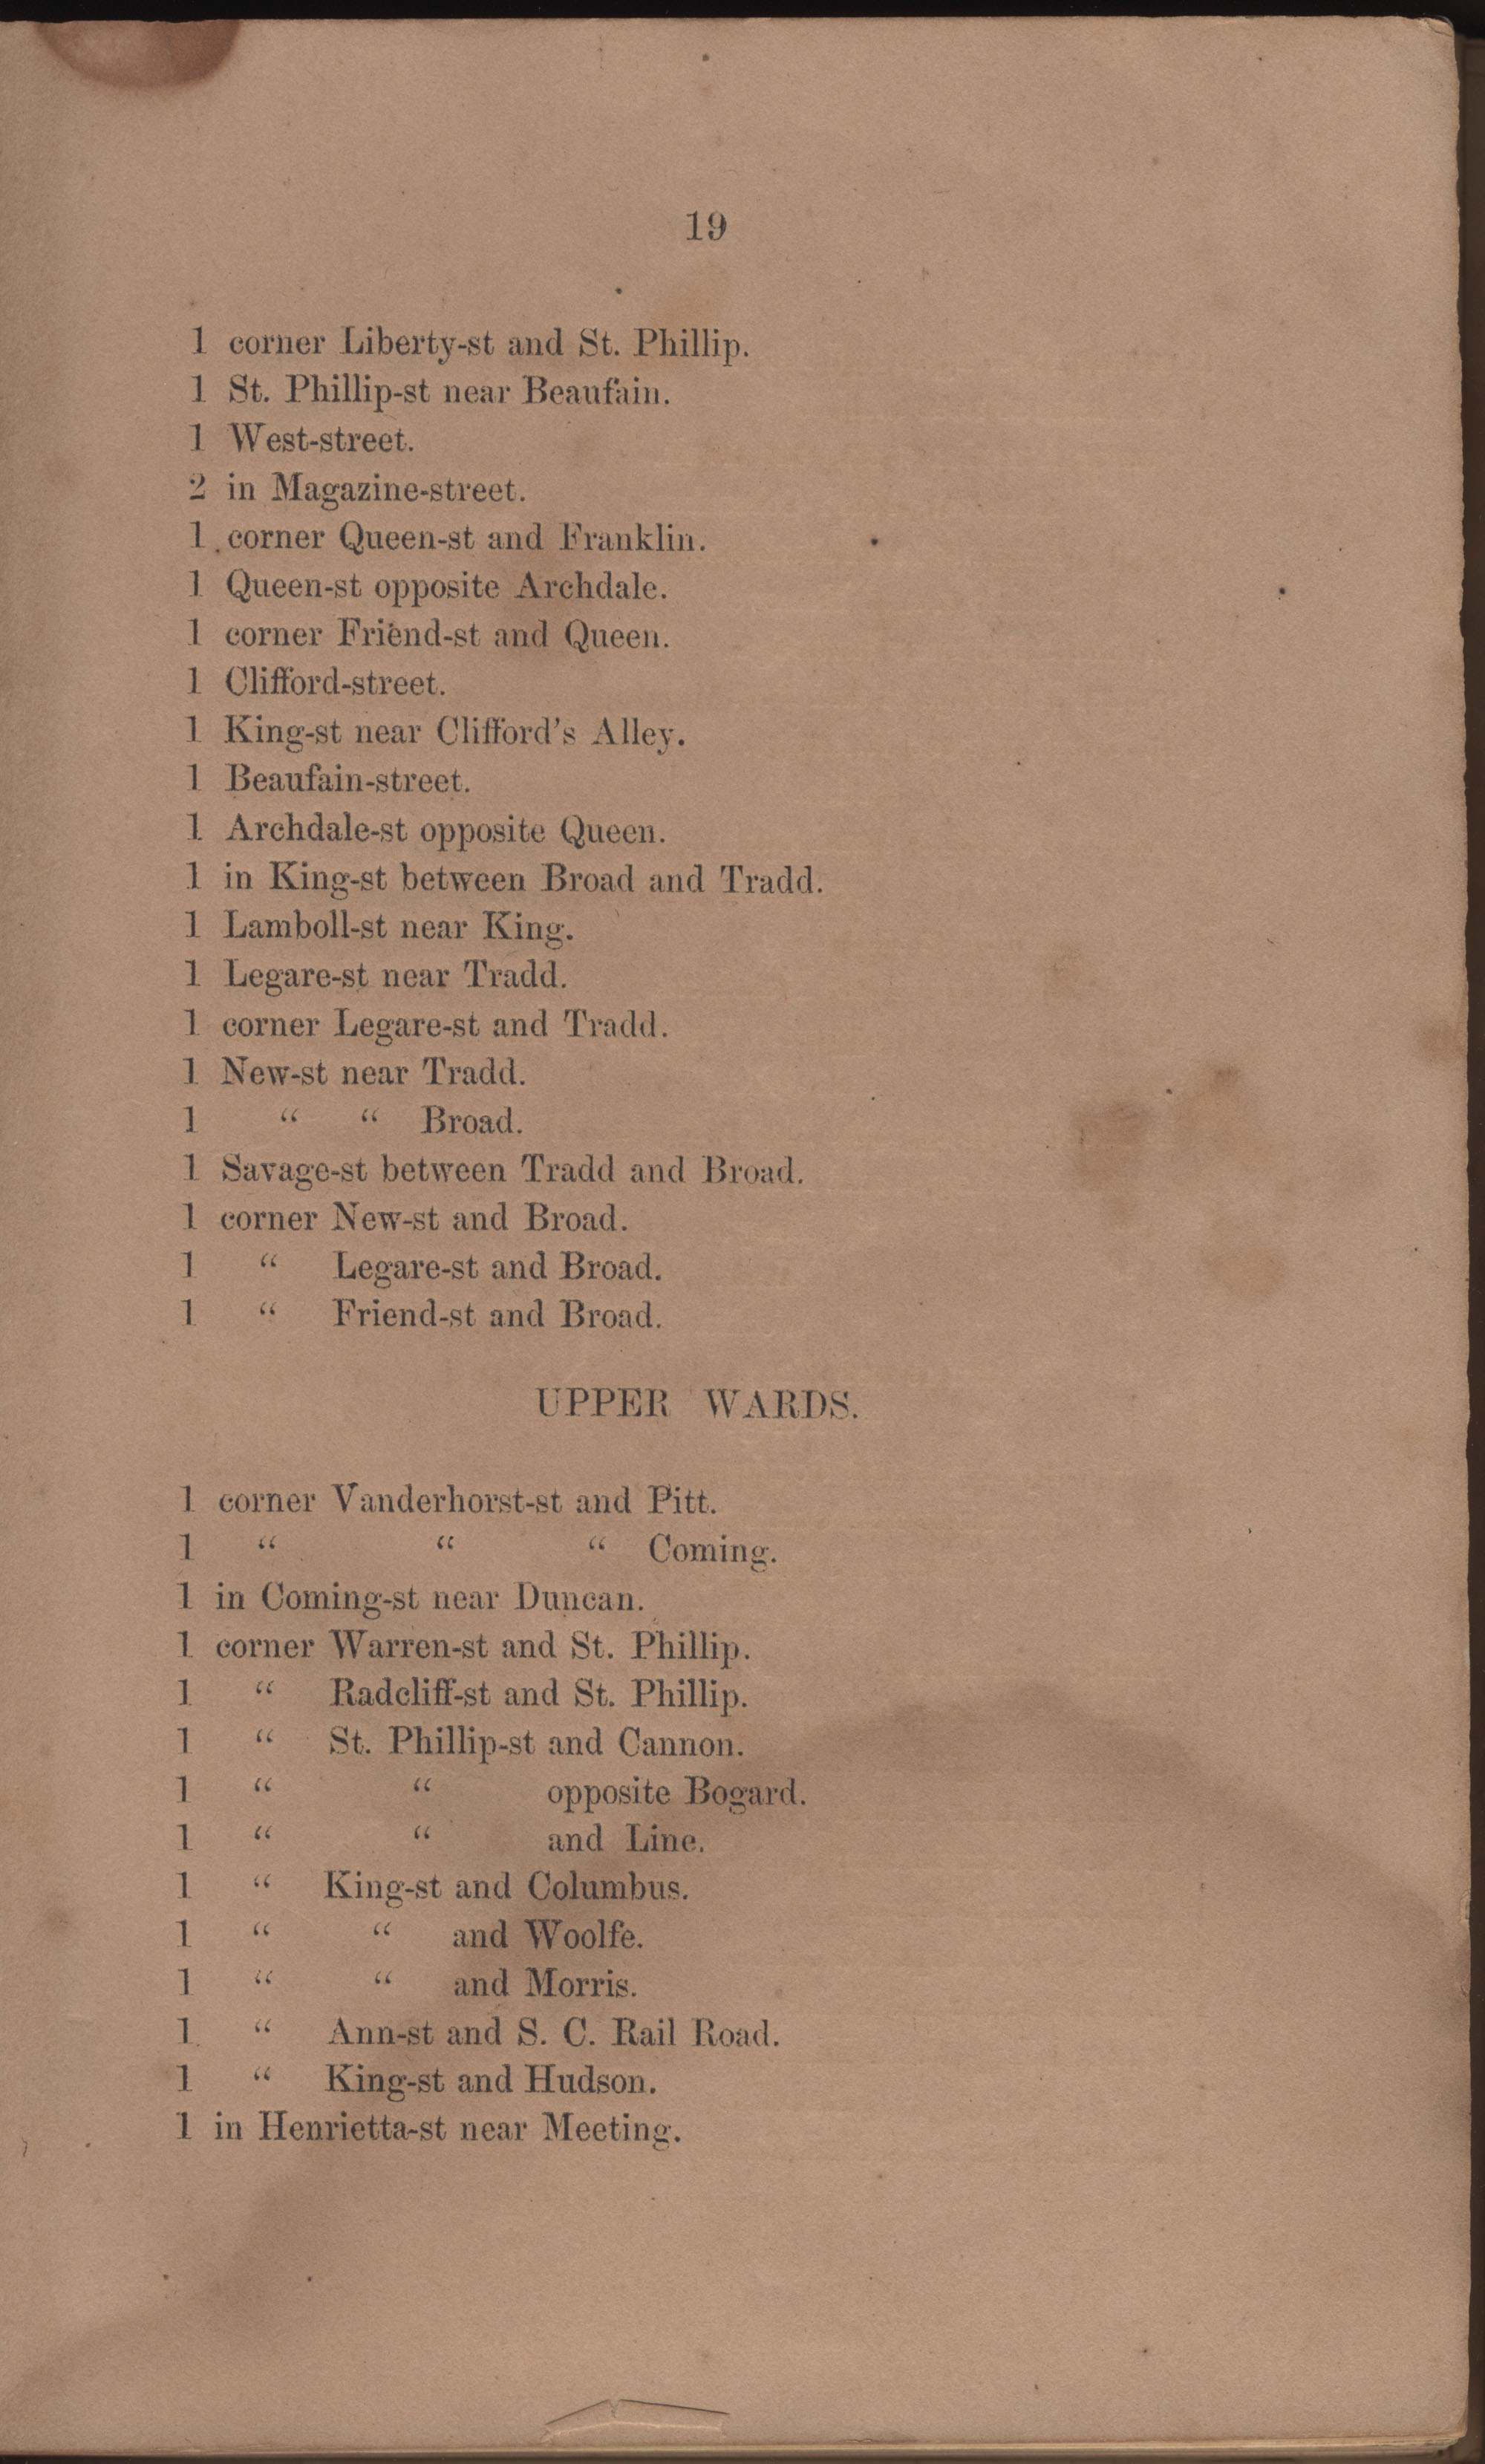 Annual Report of the Chief of the Fire Department of the City of Charleston, page 17